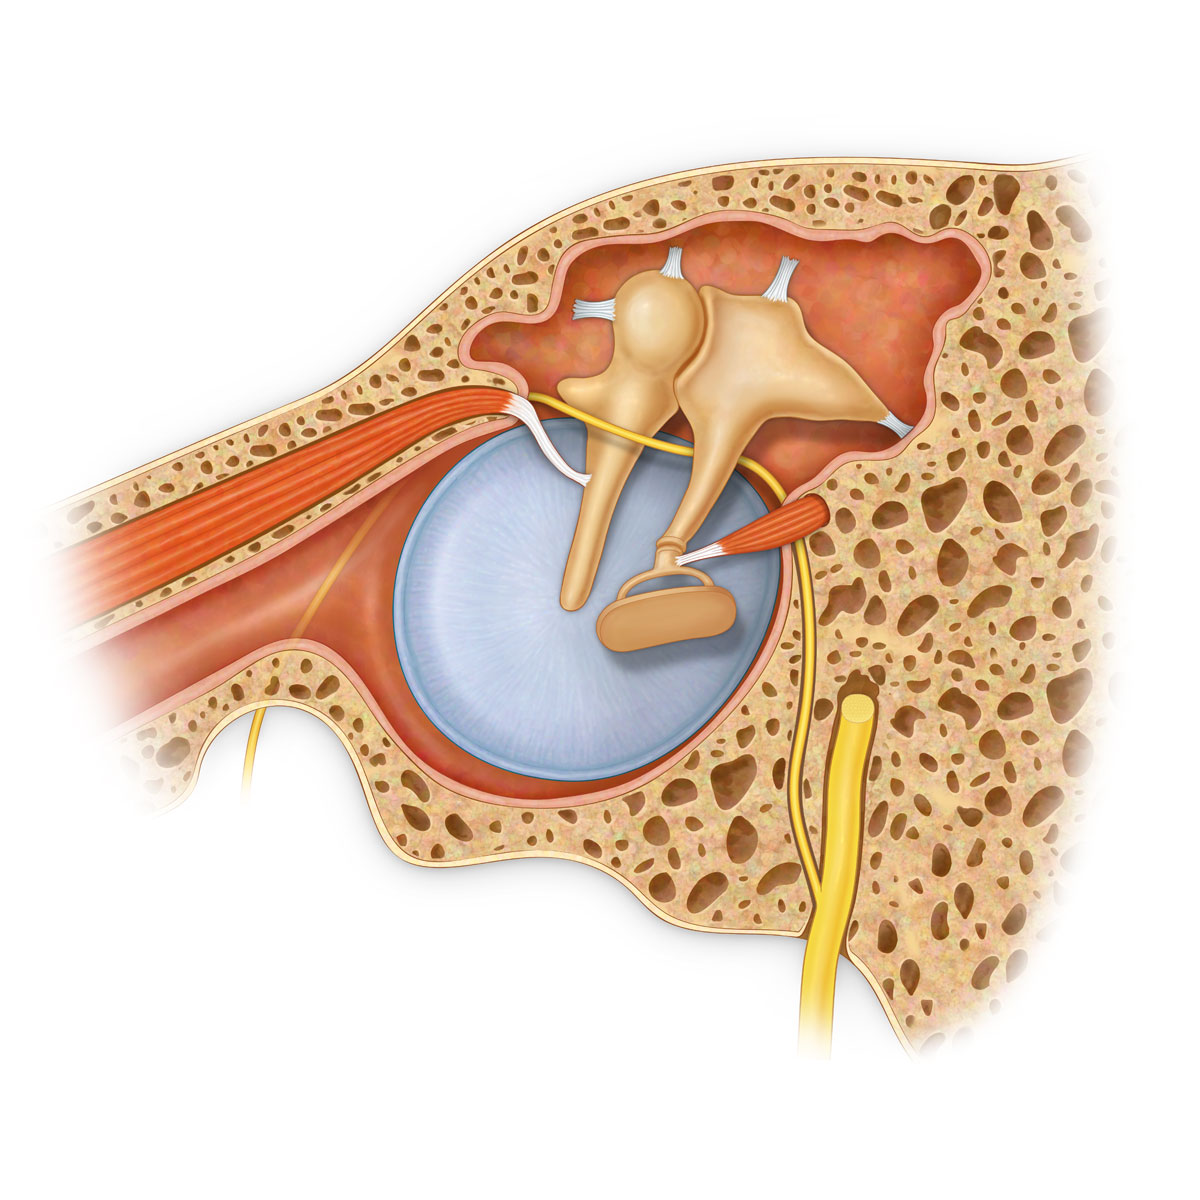 Tympanic Membrane And Ossicle Anatomy Medical Stock Art